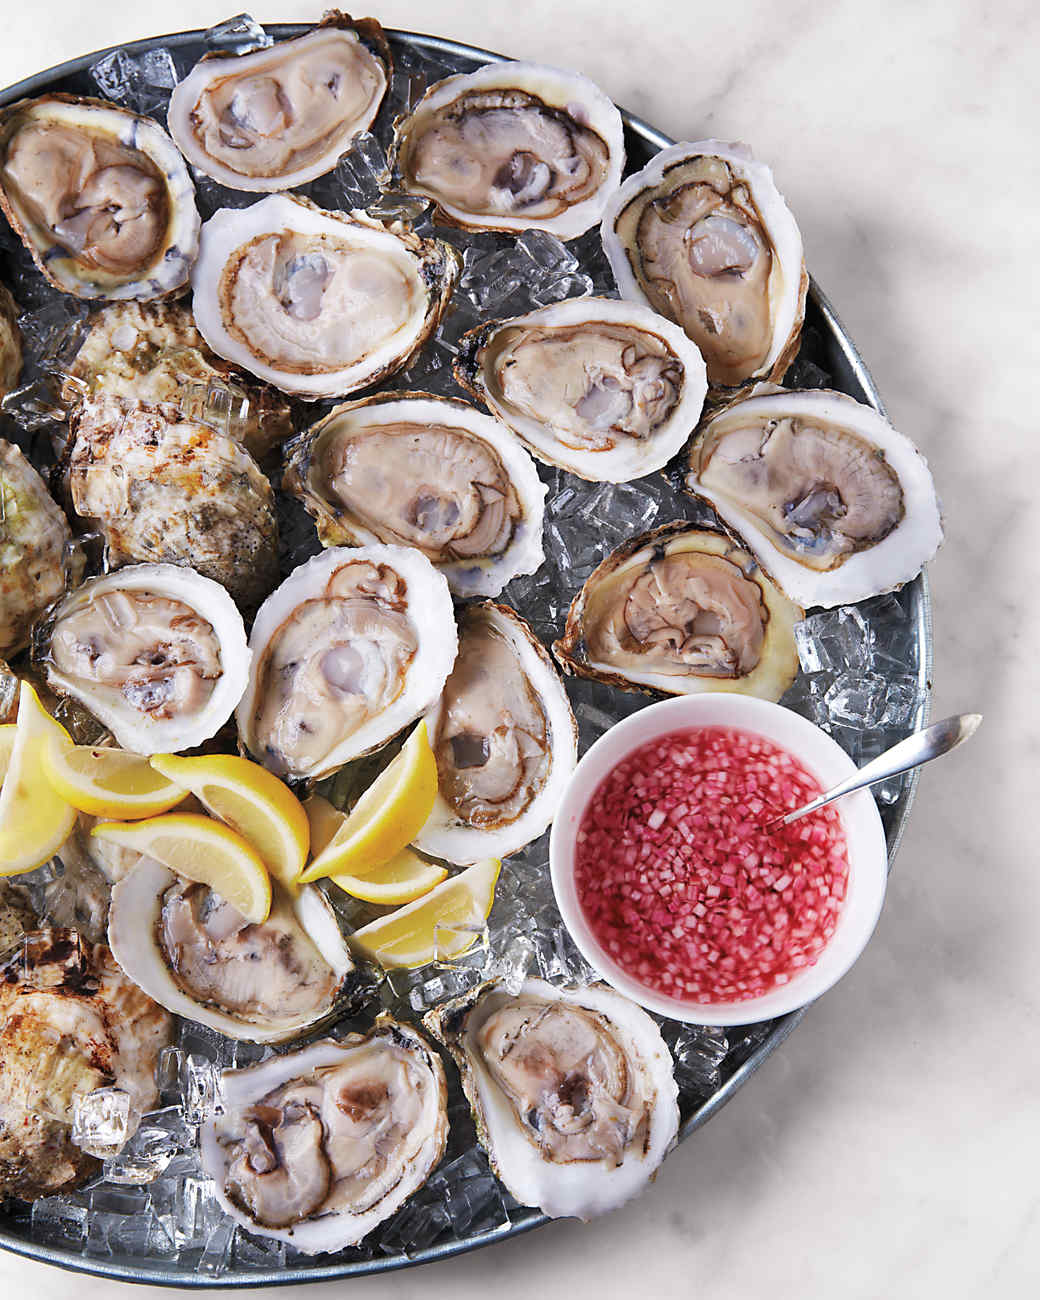 Oysters on The Half Shell Oysters on The Half Shell With